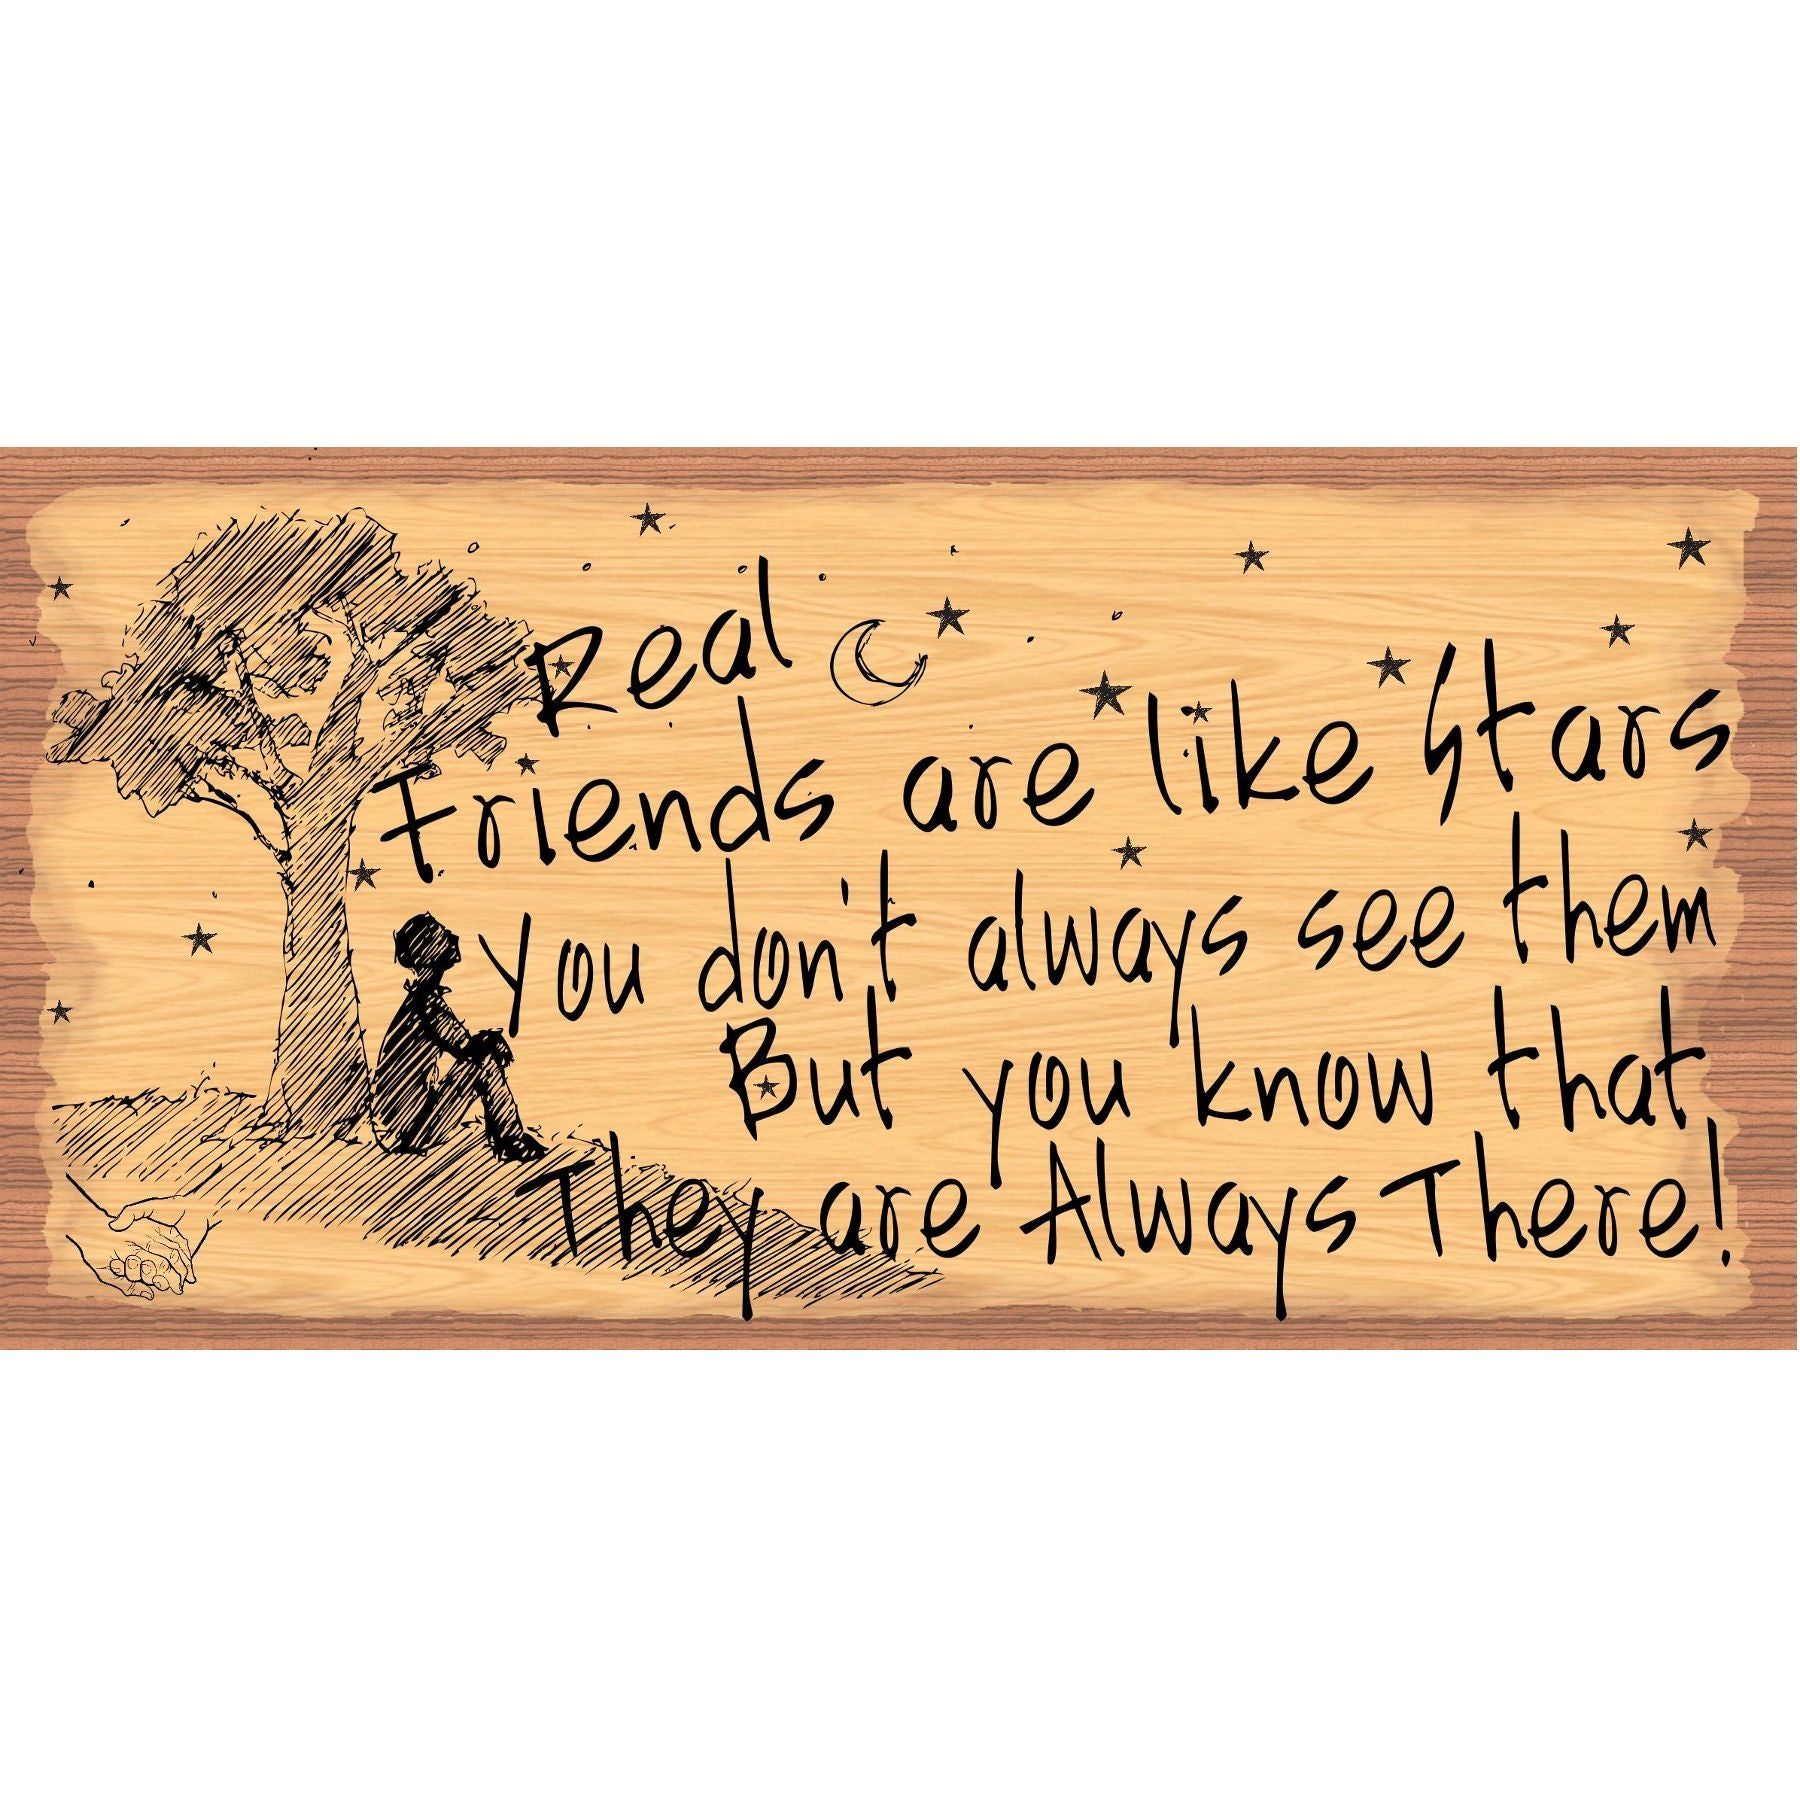 Friend Wood Signs -Real Friends are Like Stars - GS 2930 - Friend Plaque